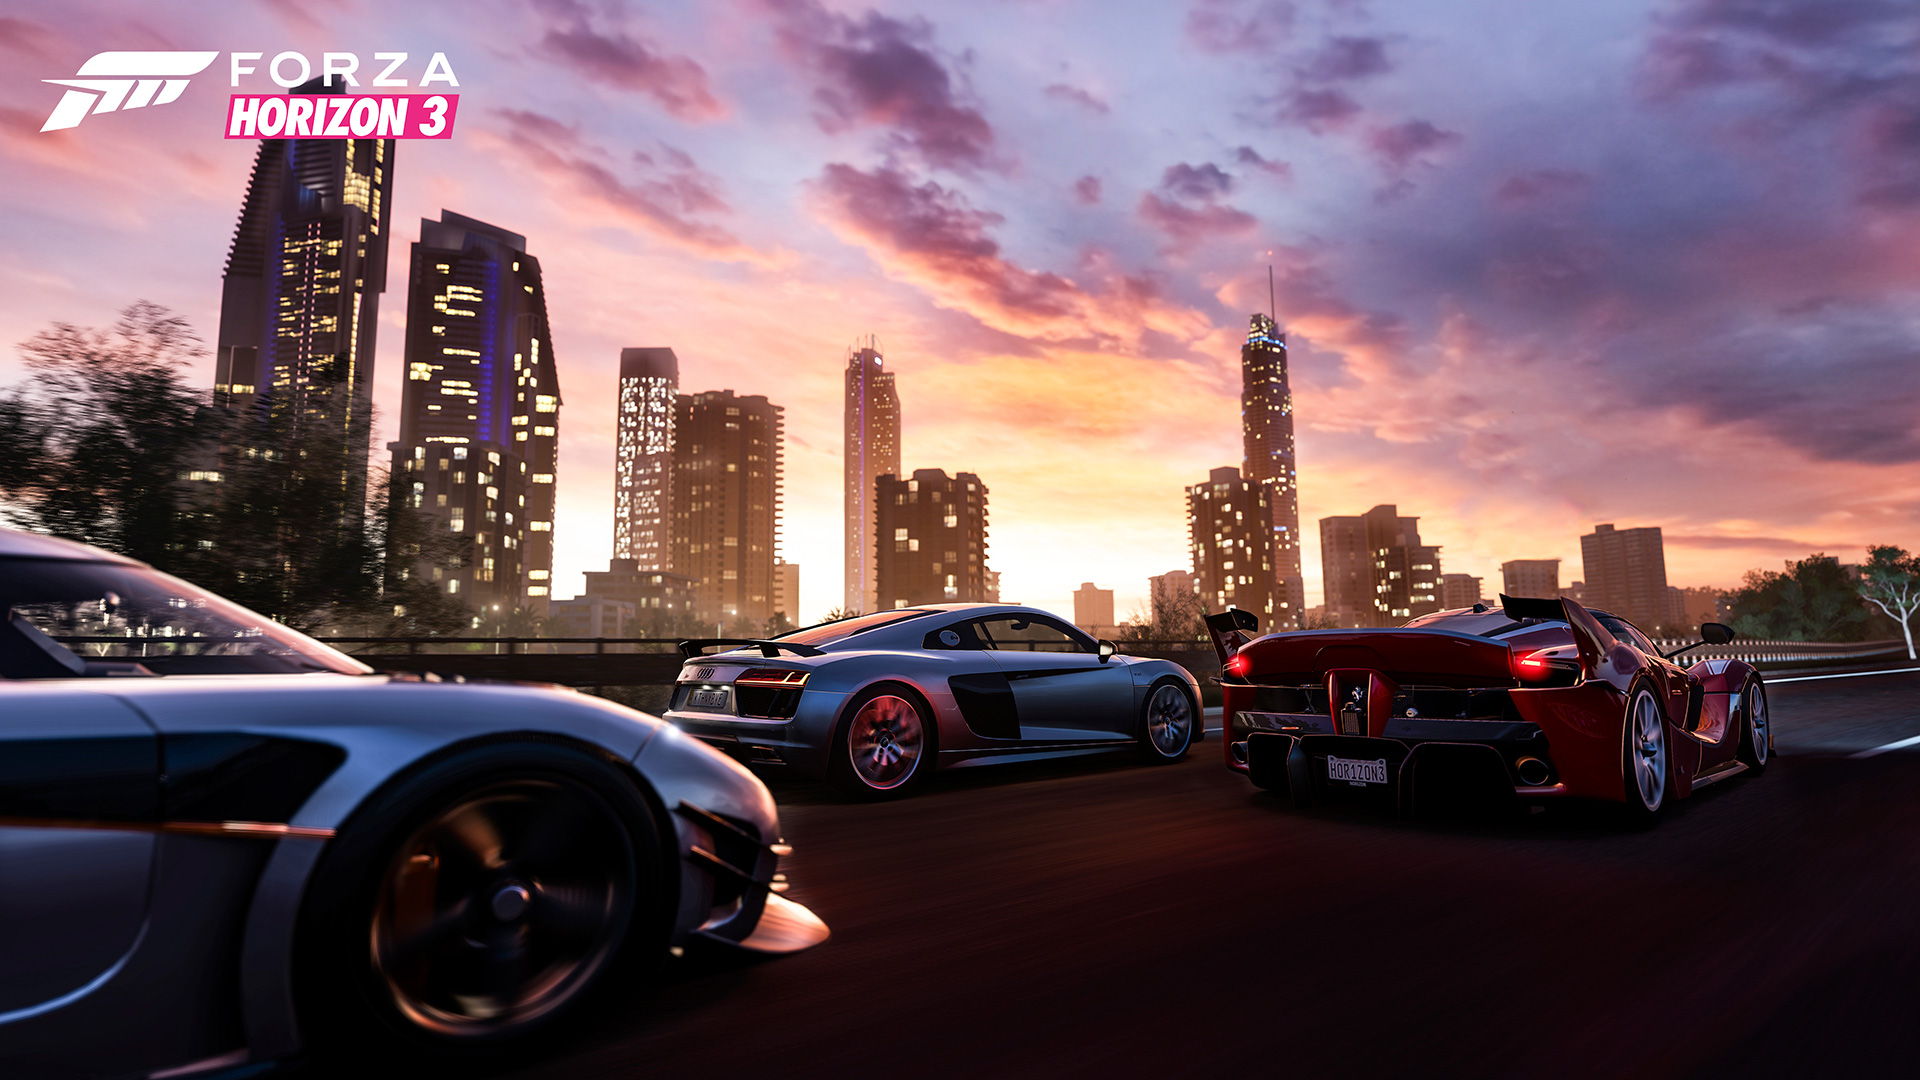 Forza Kicks It Old School With This Week\'s Horizon 3 Car ...